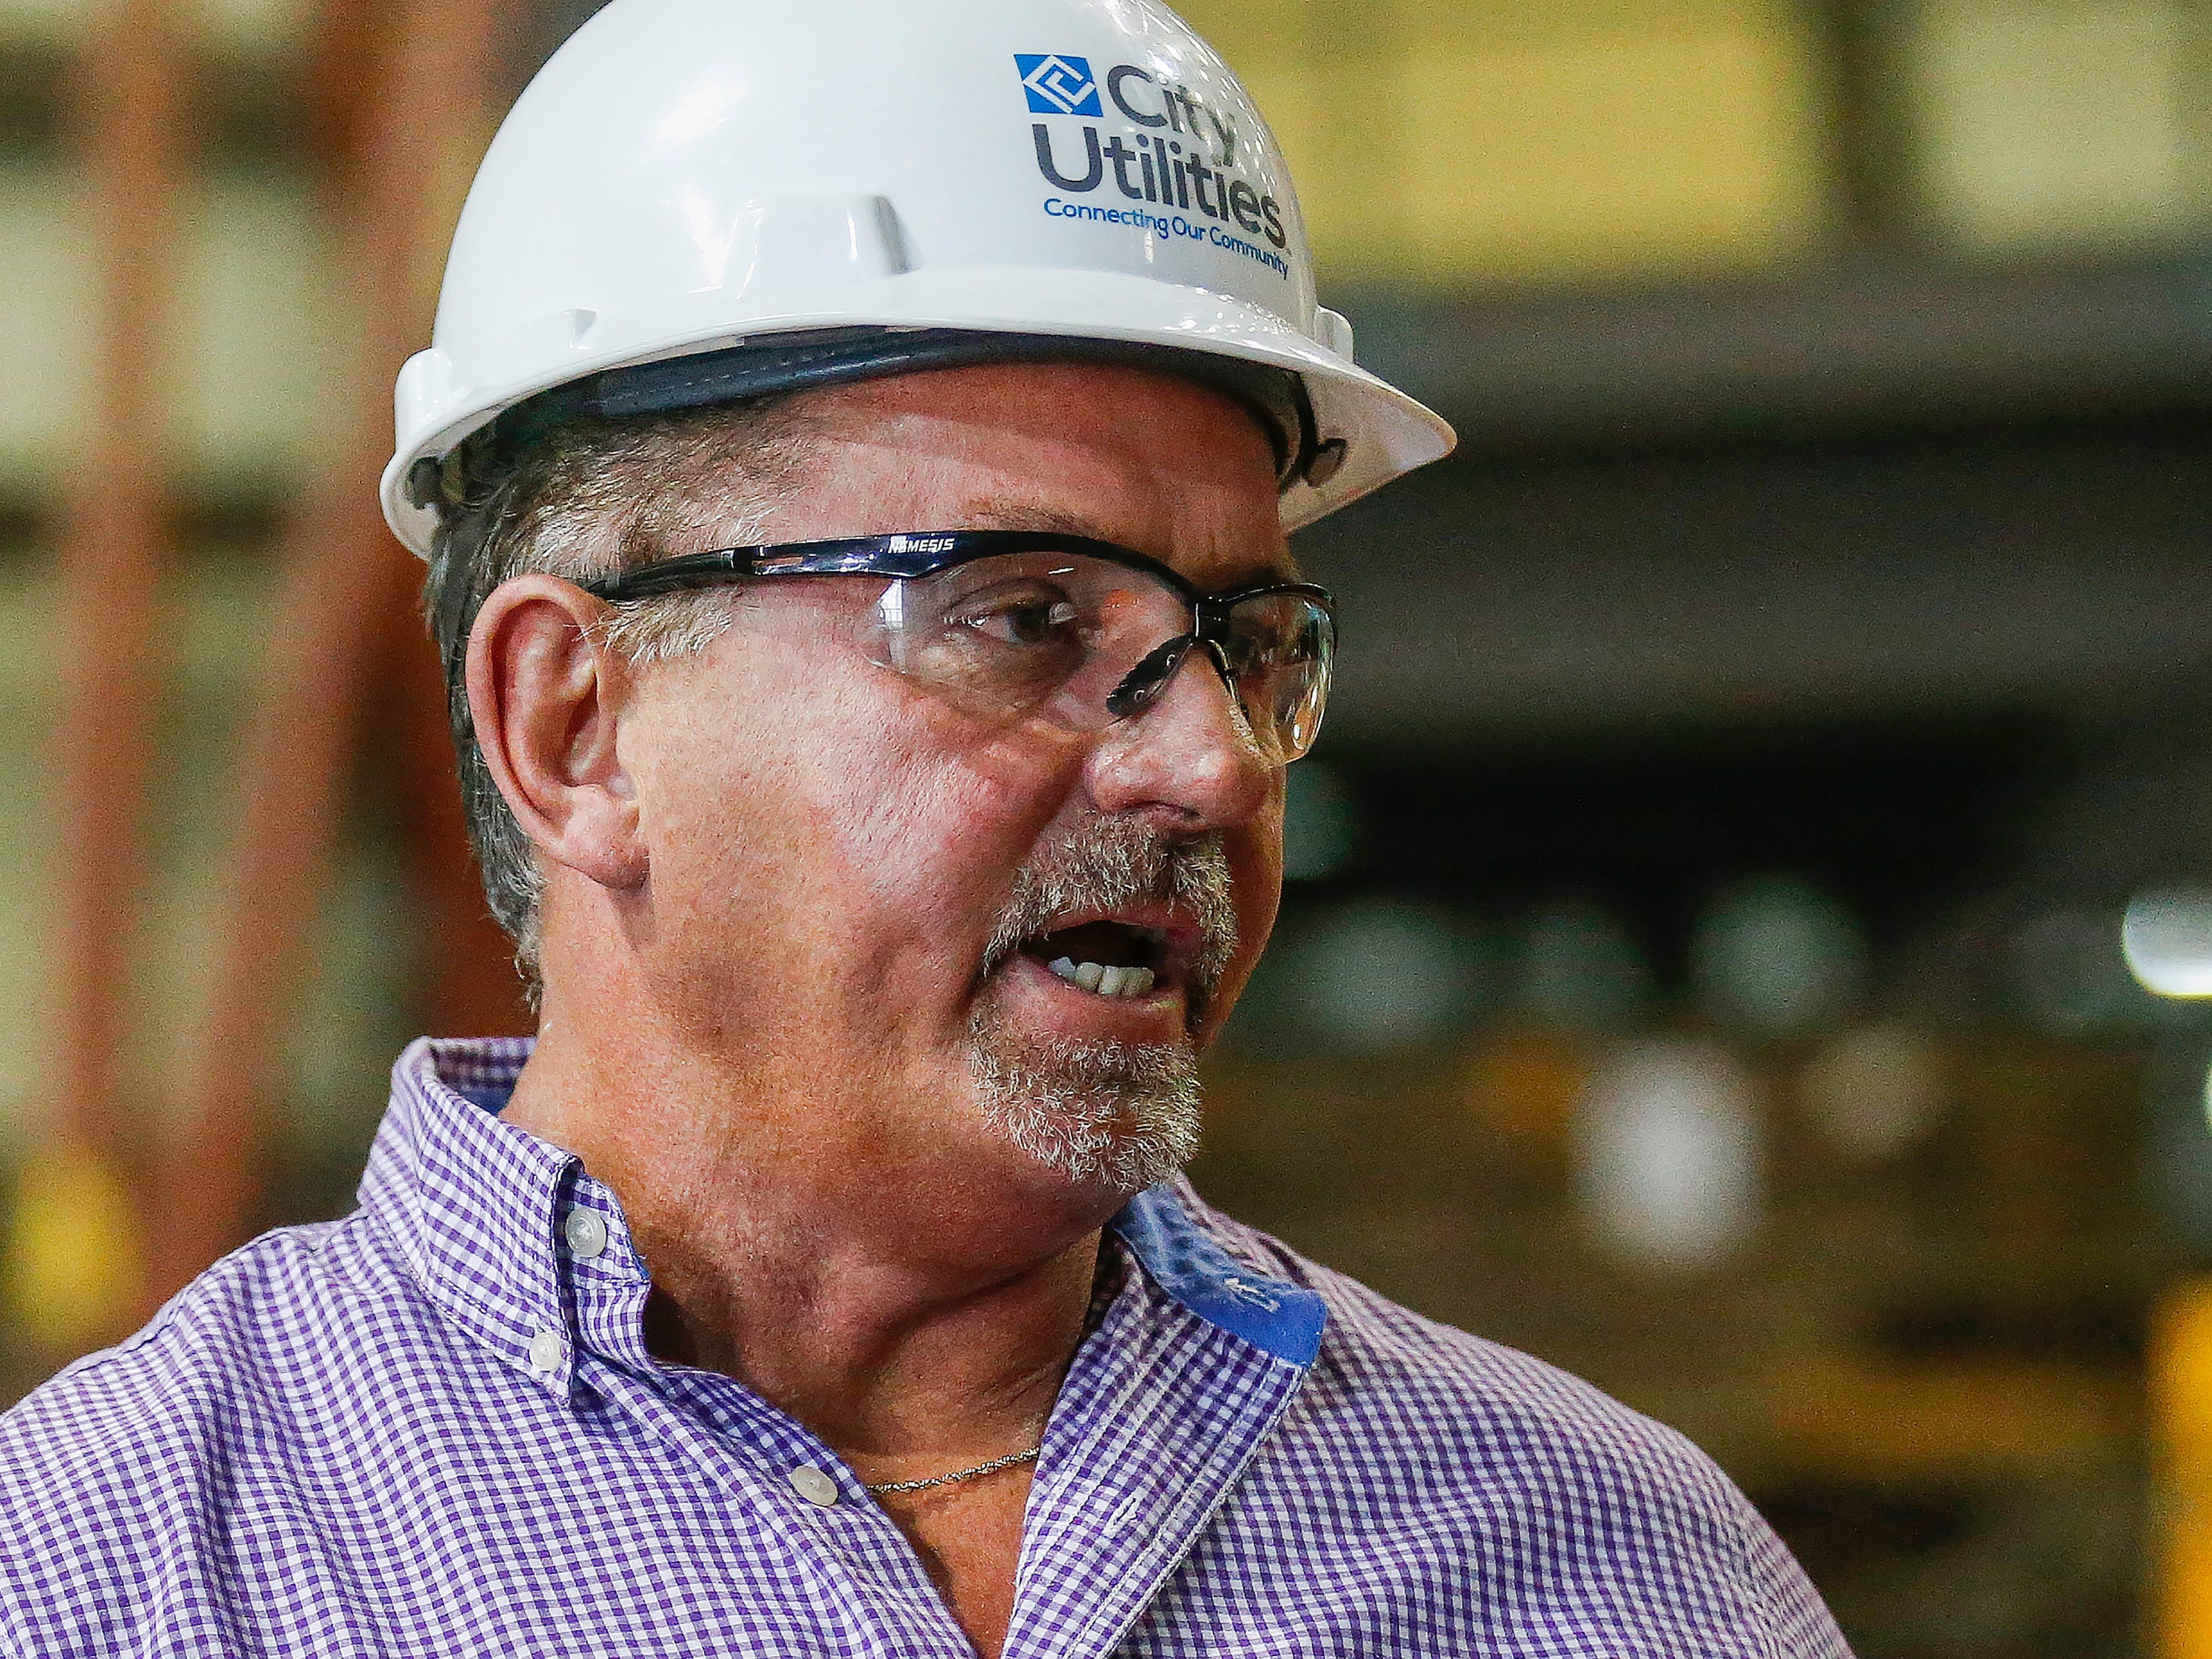 Willy Haffecke, director of power generation at the John Twitty Energy Center, talks about the damage caused to the rotor near the turbine due to high winds.